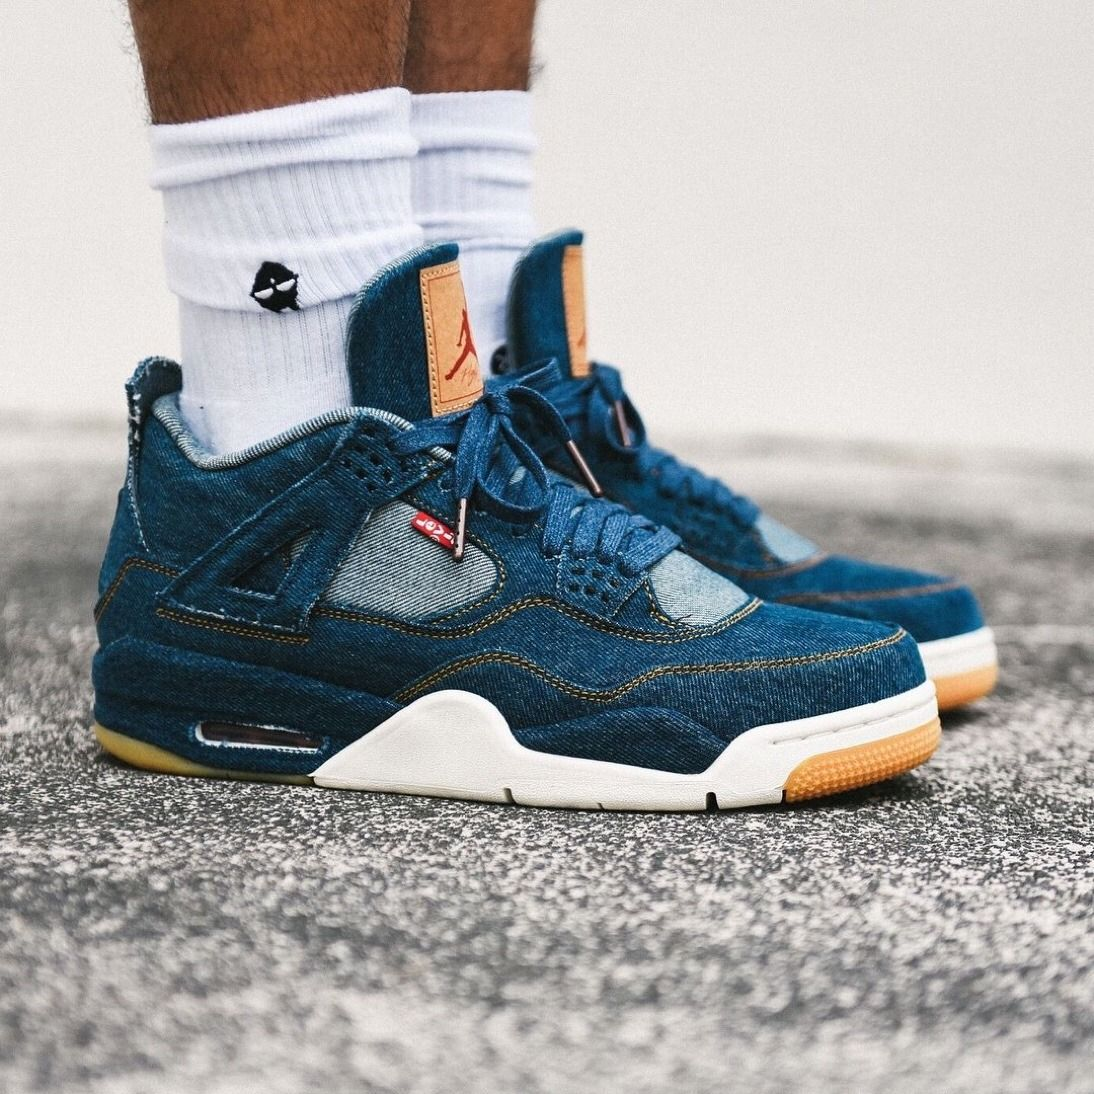 The Levis x Air Jordan 4 Retro Blue Denim by blog.sneakerando.com sneakers